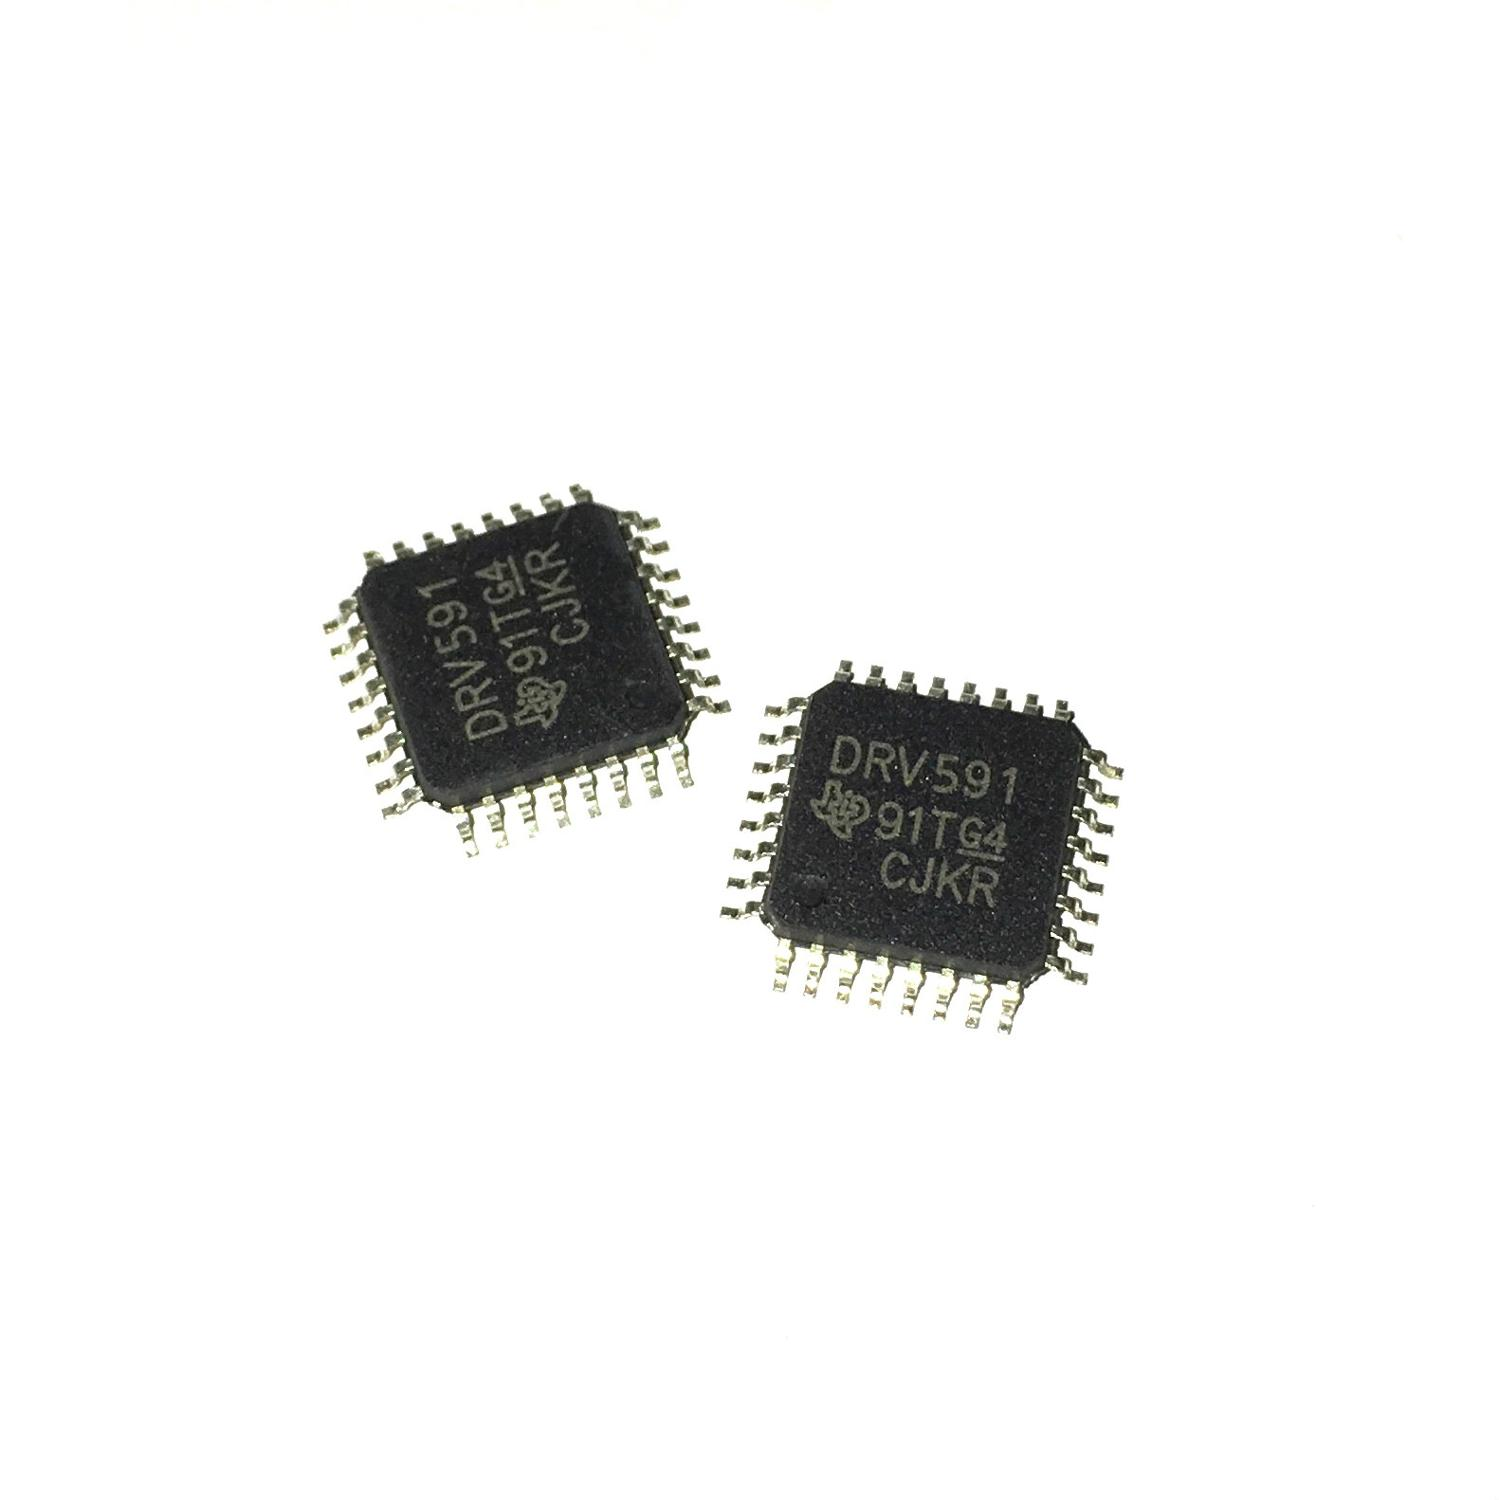 New original DRV591VFP thermoelectric cooler 2.8V~5.5V DRV591-in Replacement Parts & Accessories from Consumer Electronics    1